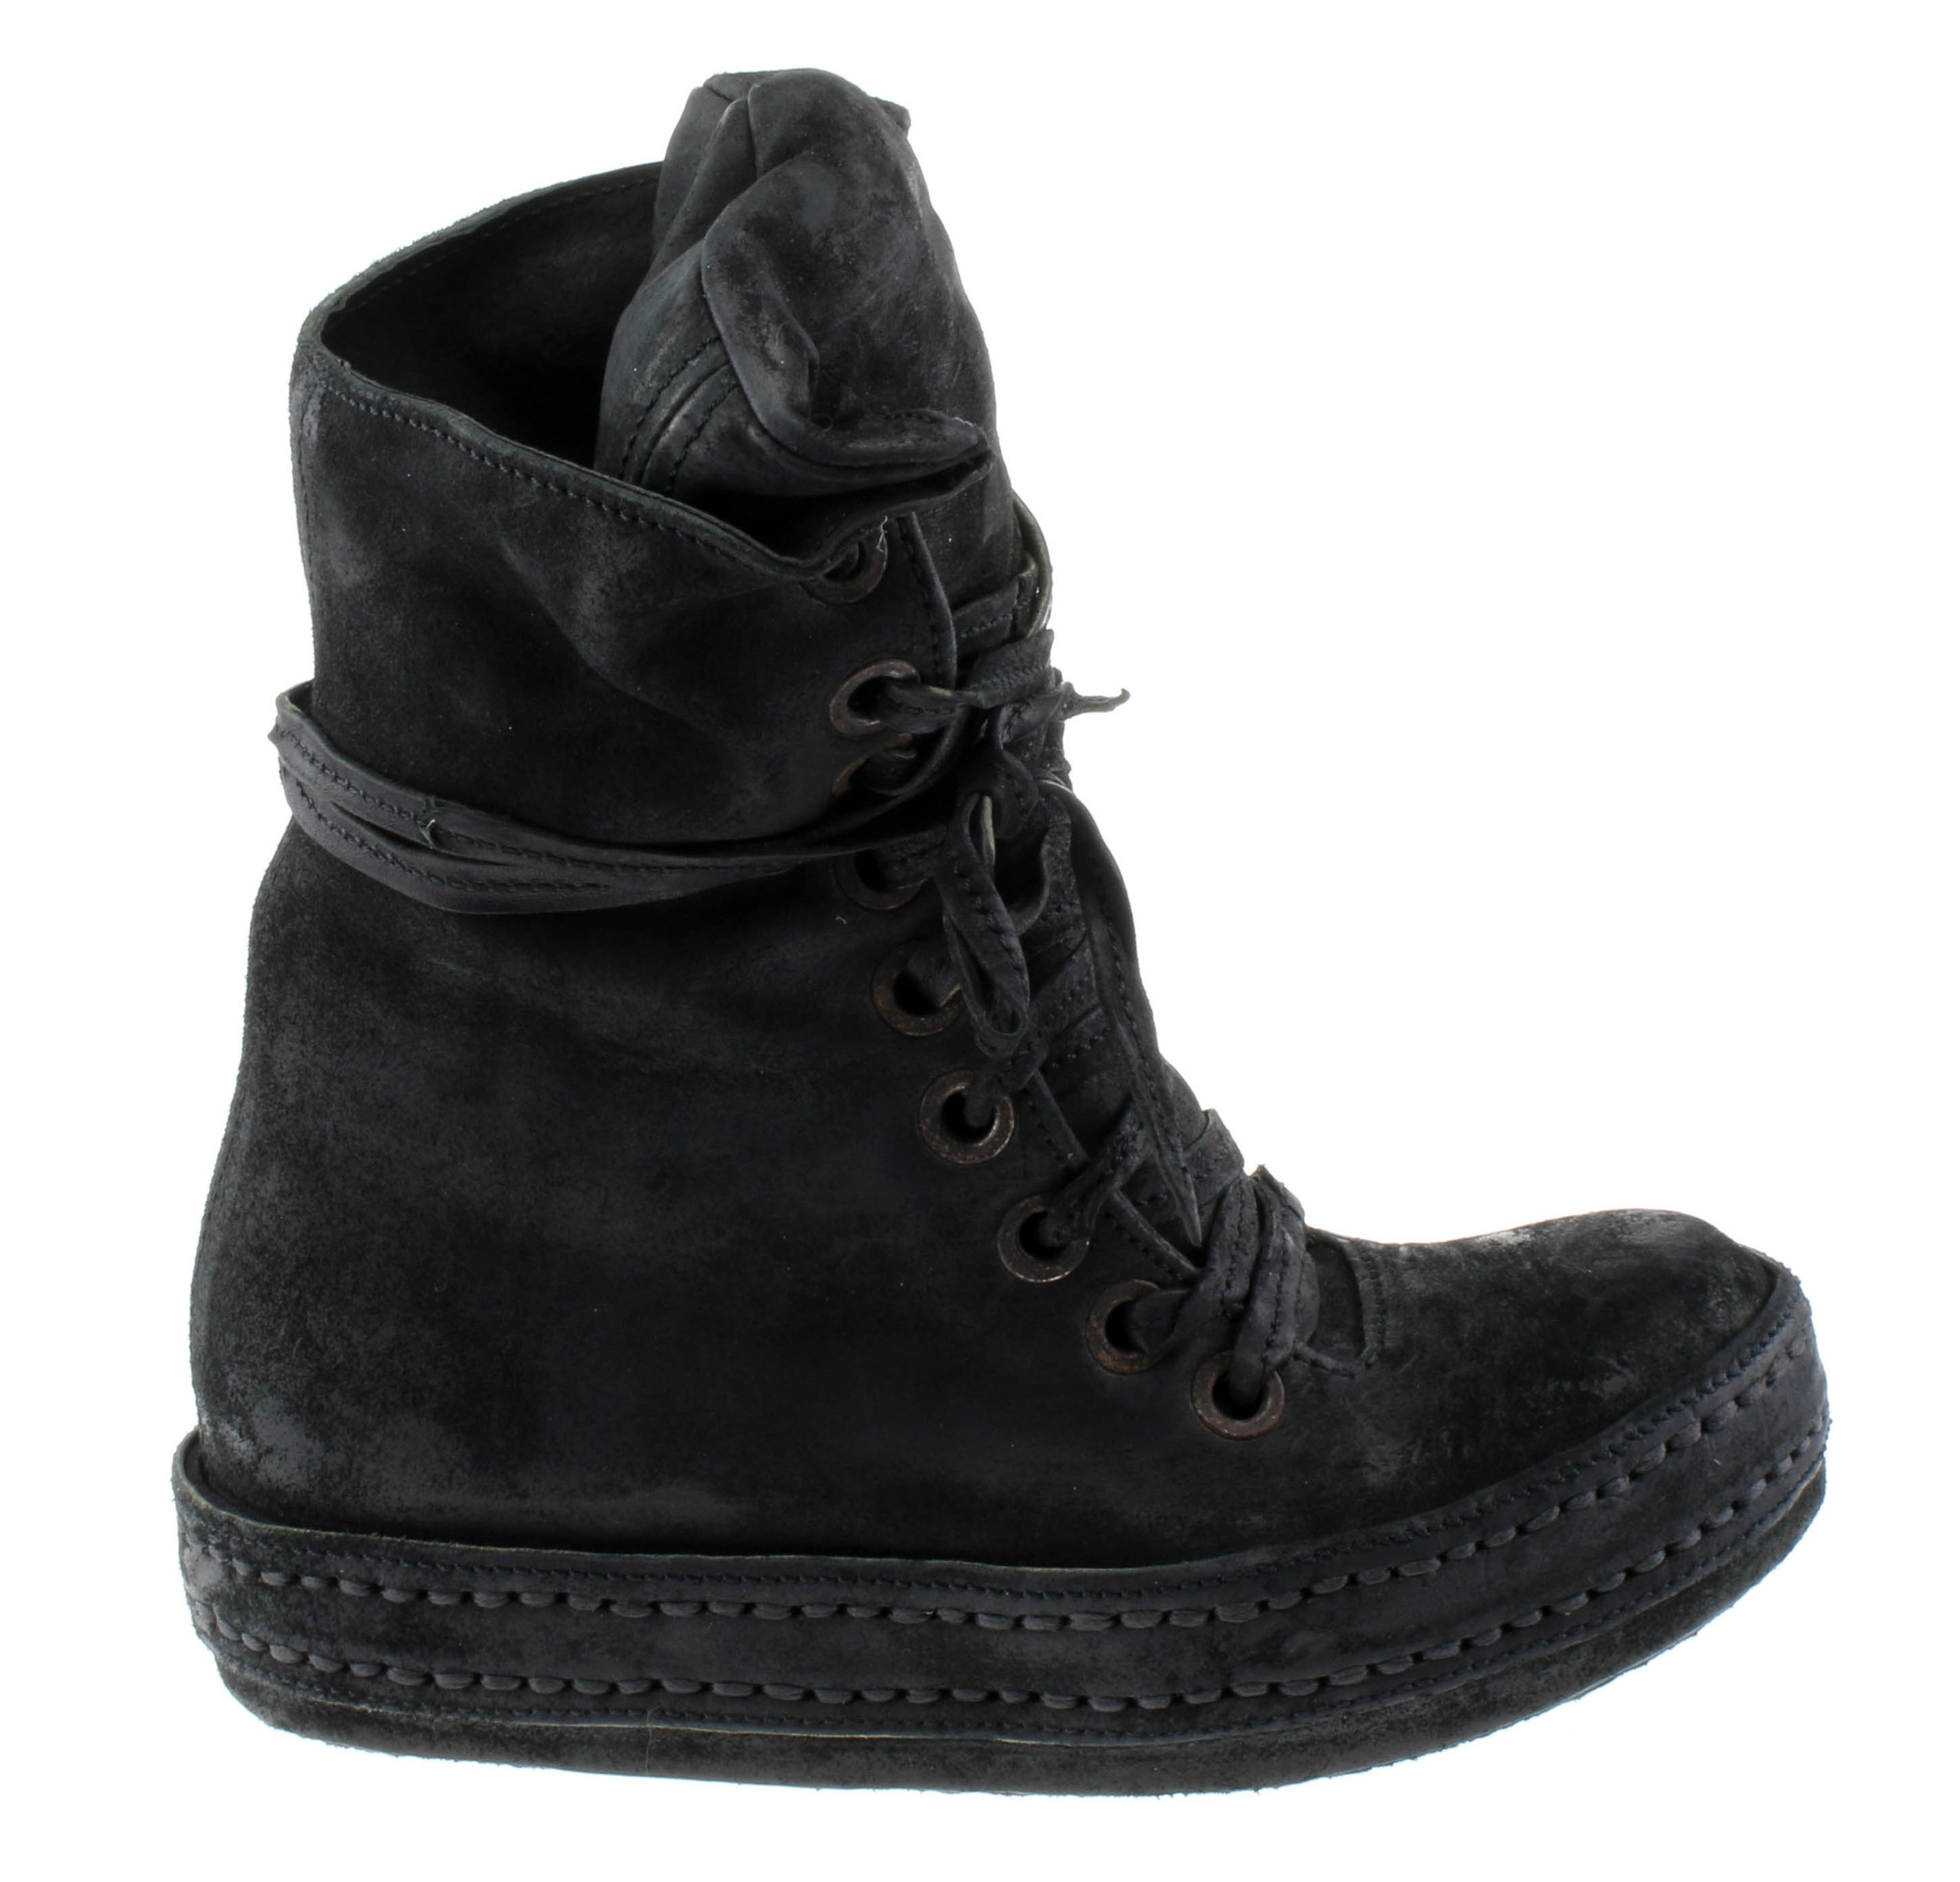 10Hole Washed Black Suede